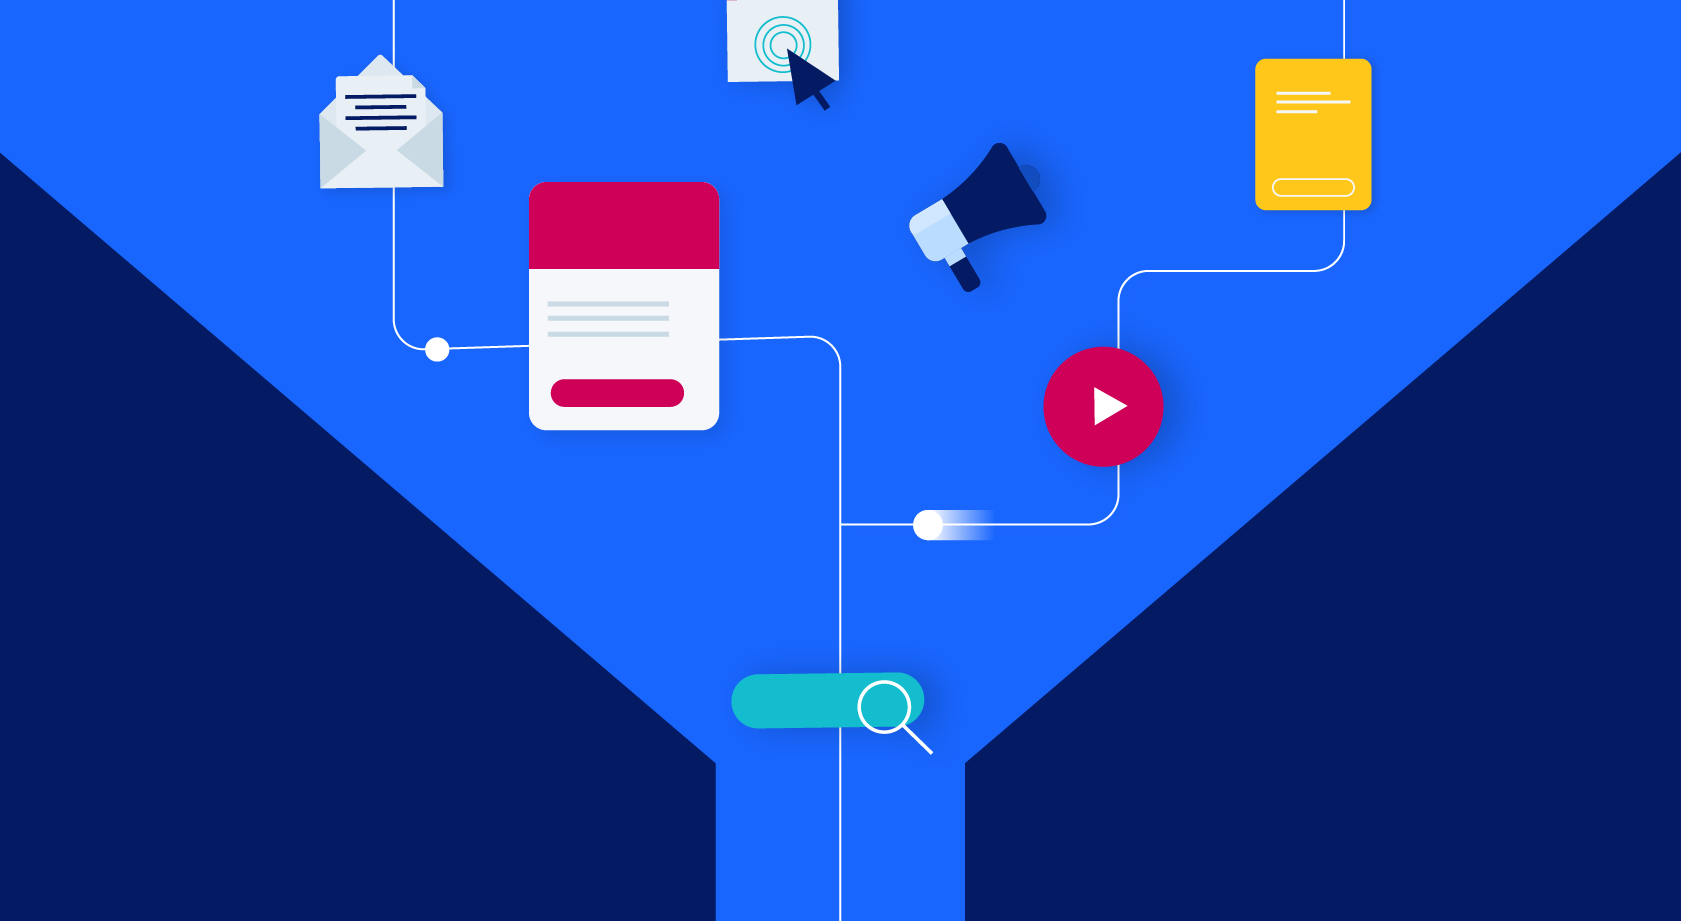 graphic elements representing content in a funnel